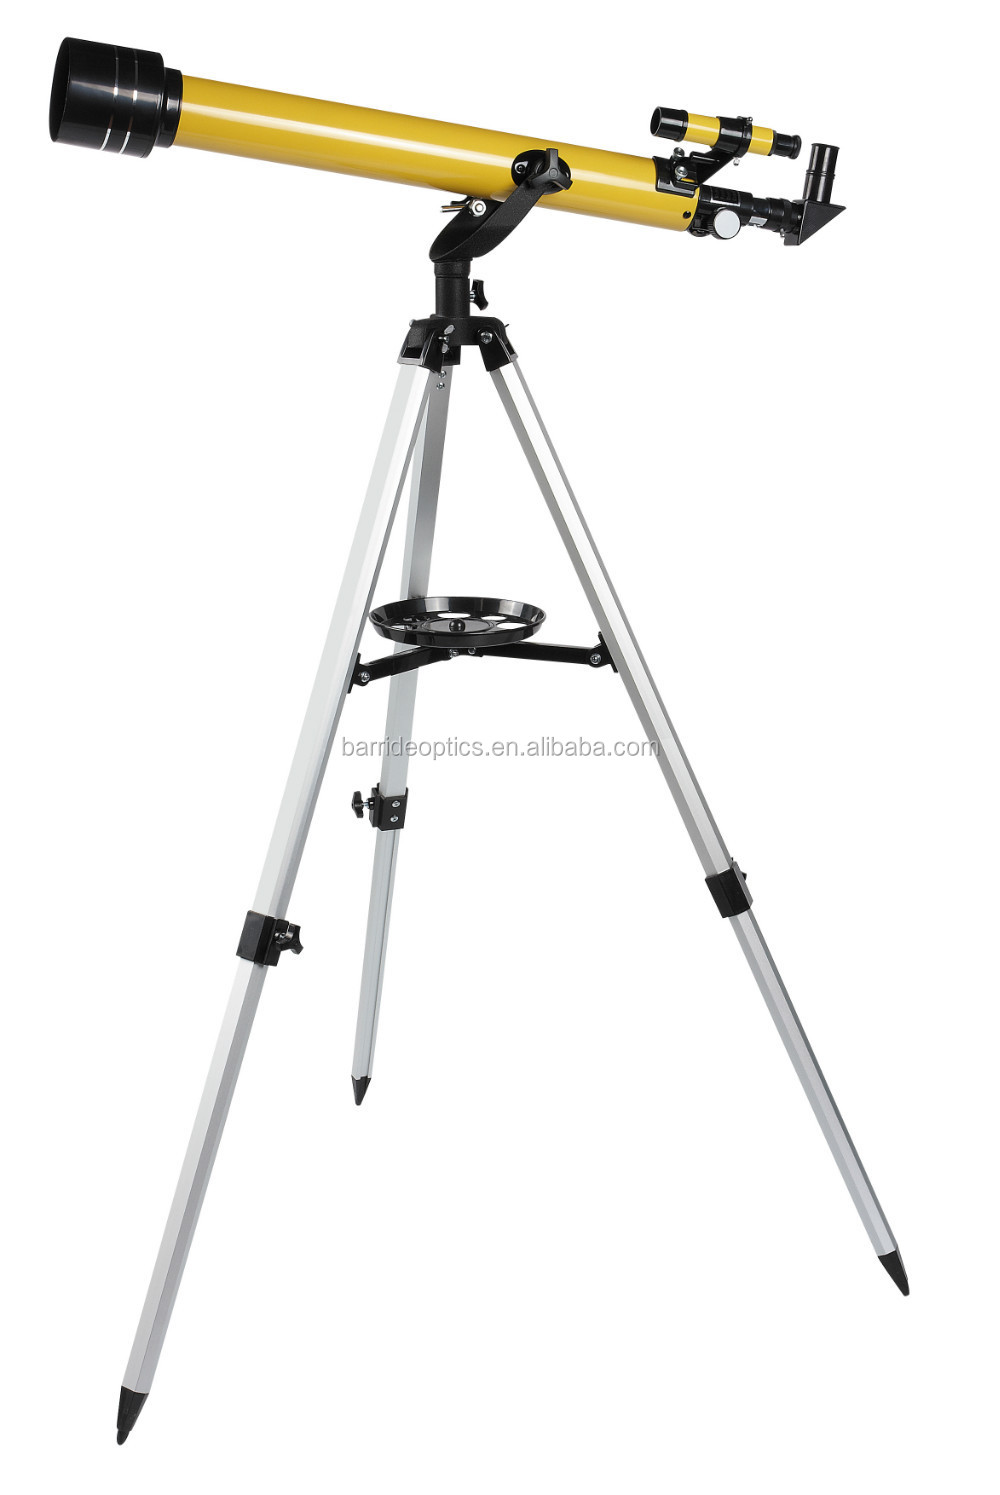 (bm-70060m )reflector Astronomical Telescope For Student Education - Buy  Astronomical Telescope For Student,Telescope For Education,70060 Telescope